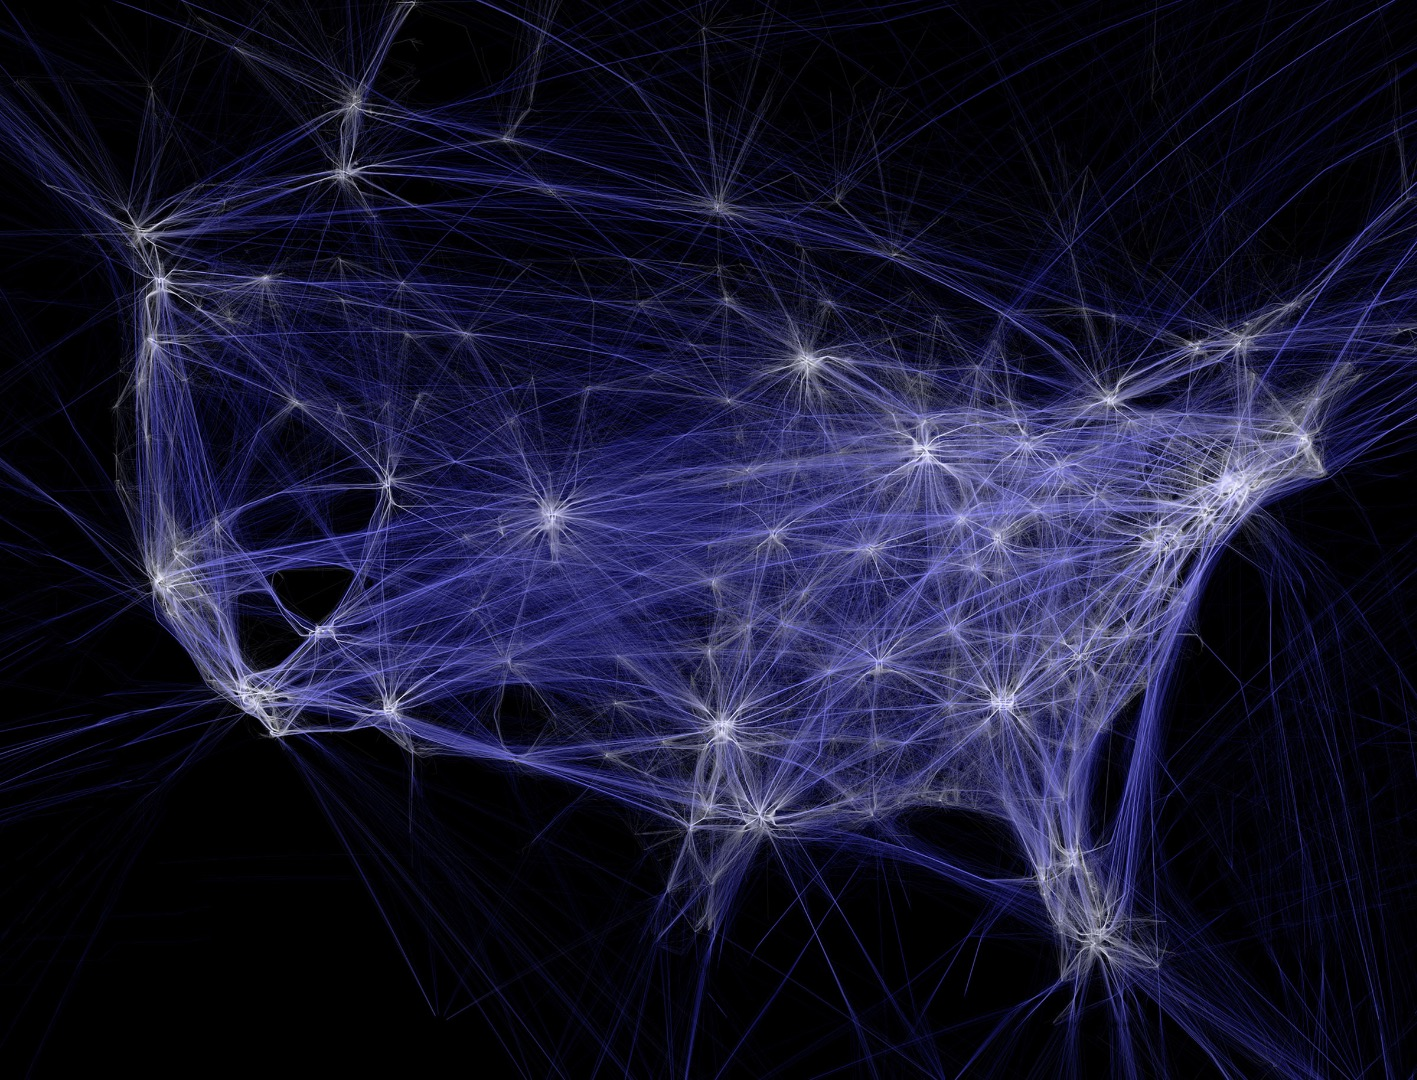 Art in the age of ones and zeros: Turning big data into art